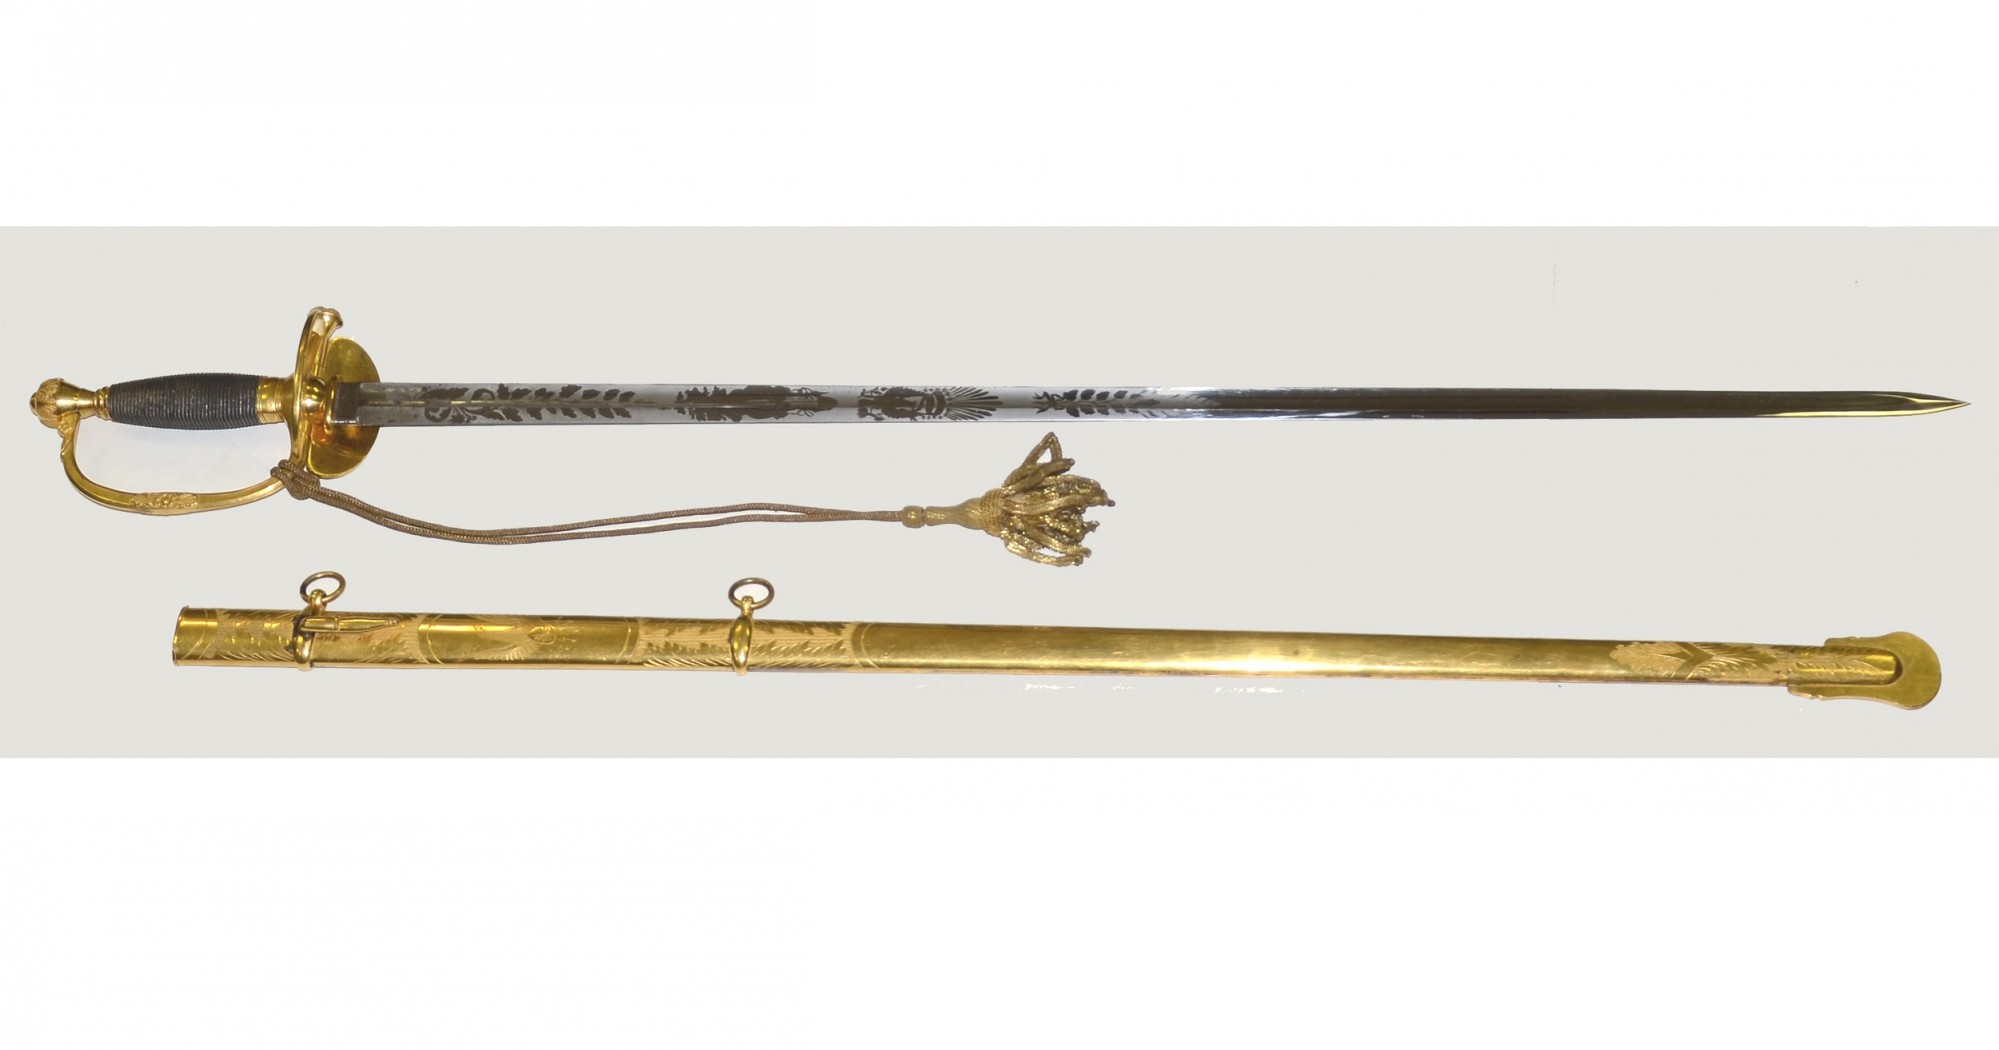 THE FINEST M1840 GENERAL OFFICER'S SWORD KNOWN TO EXIST! IDENTIFIED TO MILITIA OFFICER FROM WEALTHY LONG ISLAND, NY FAMILY